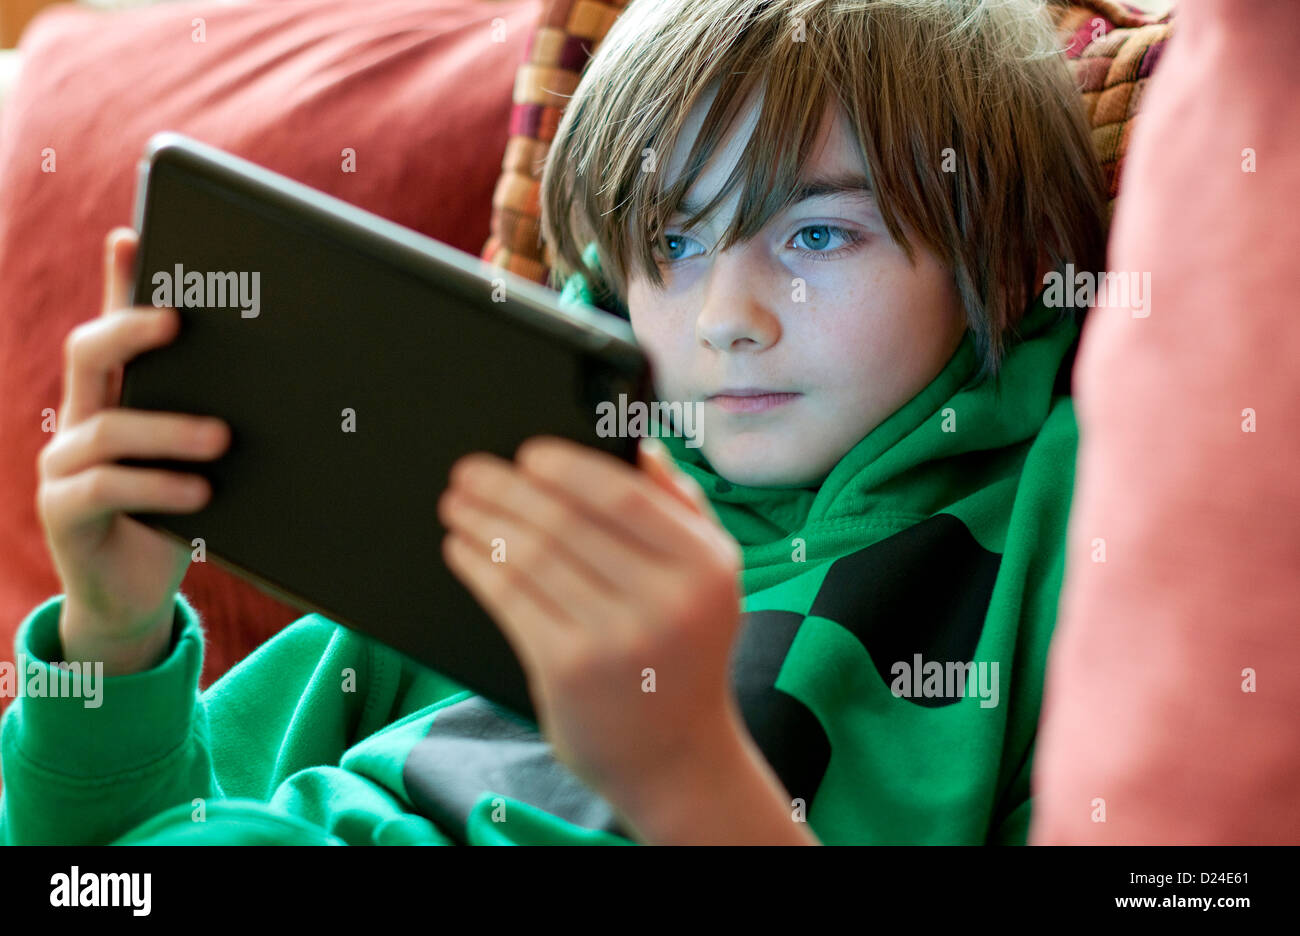 young male boy using ipad mini tablet computer Stock Photo